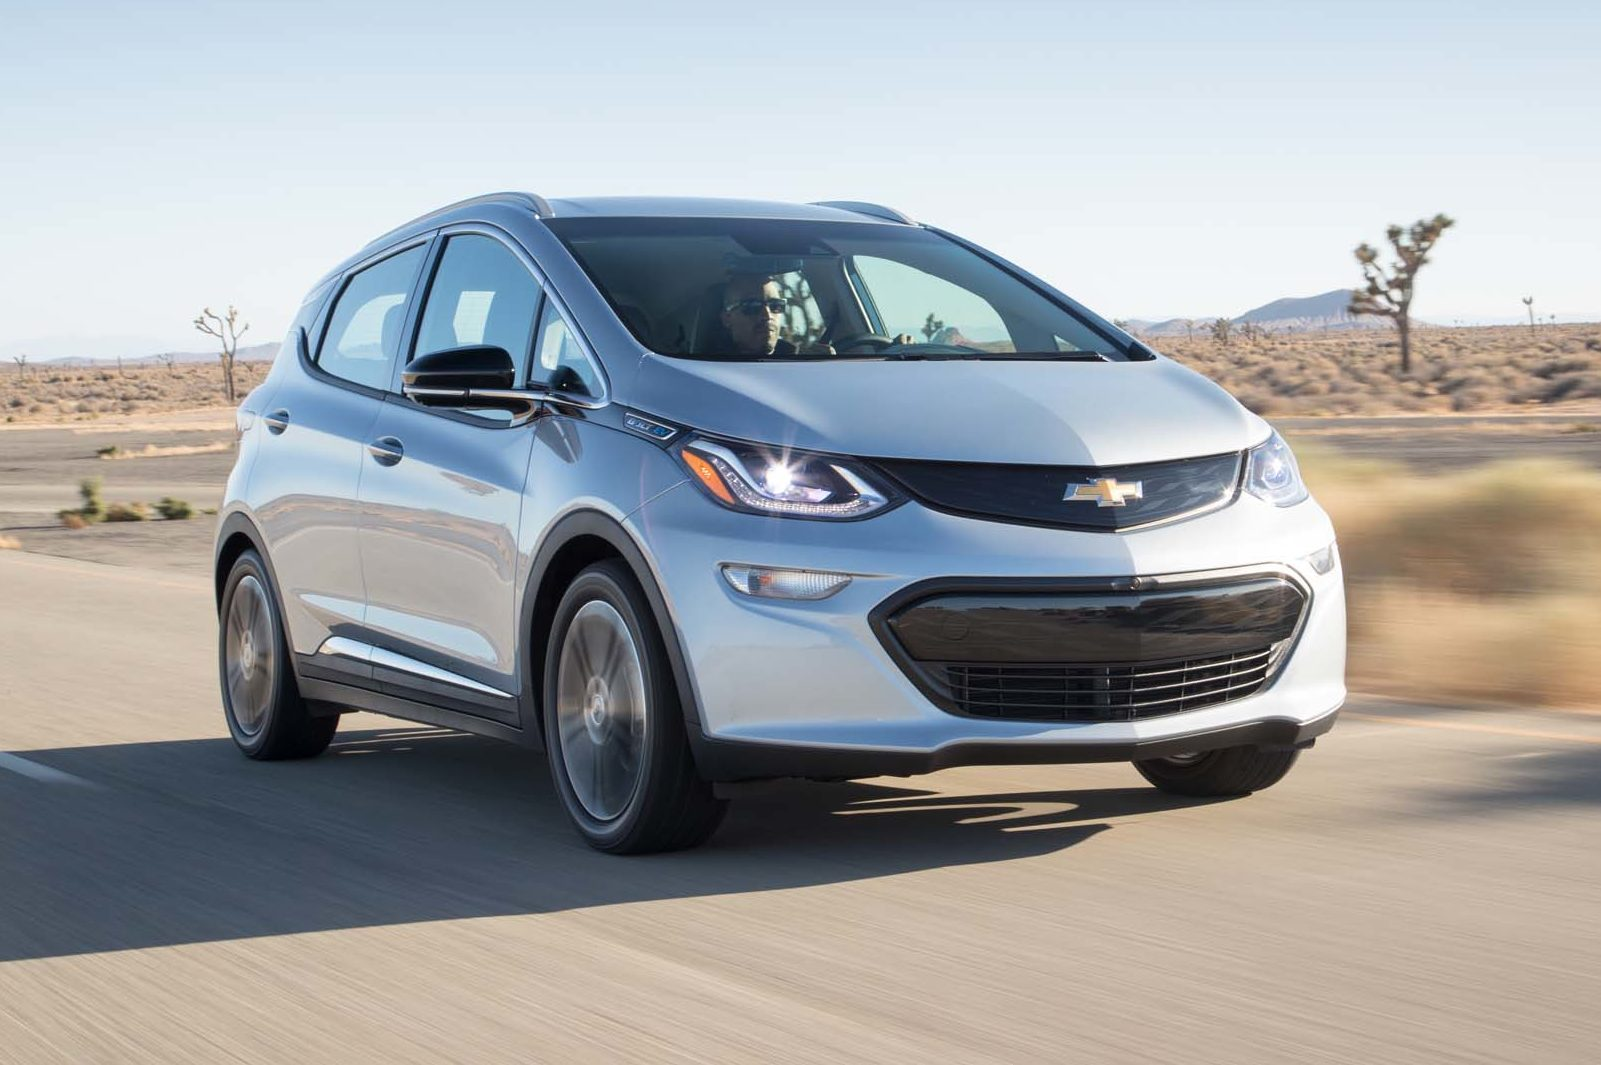 2017 Chevrolet Bolt EV Front Three Quarter In Motion E1477945416849